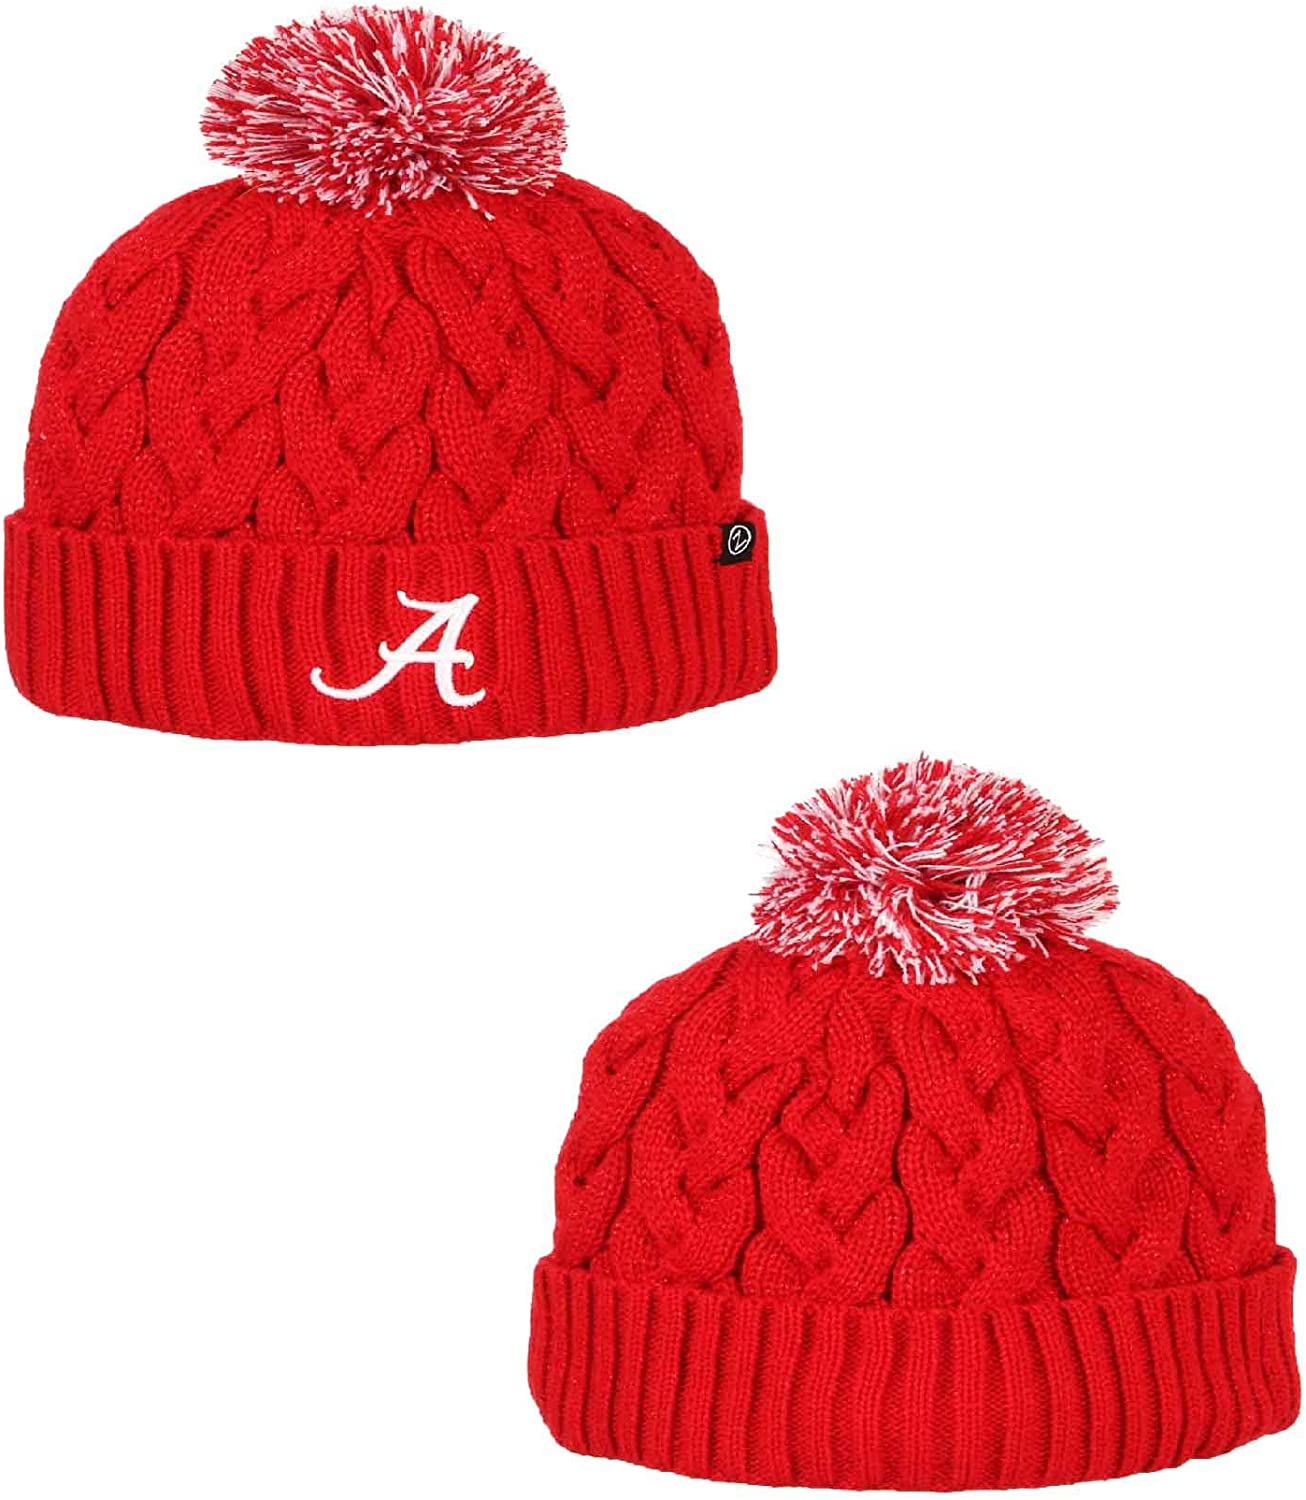 Campus Colors Womens NCAA Ultra Soft Sherpa Knit Beanie